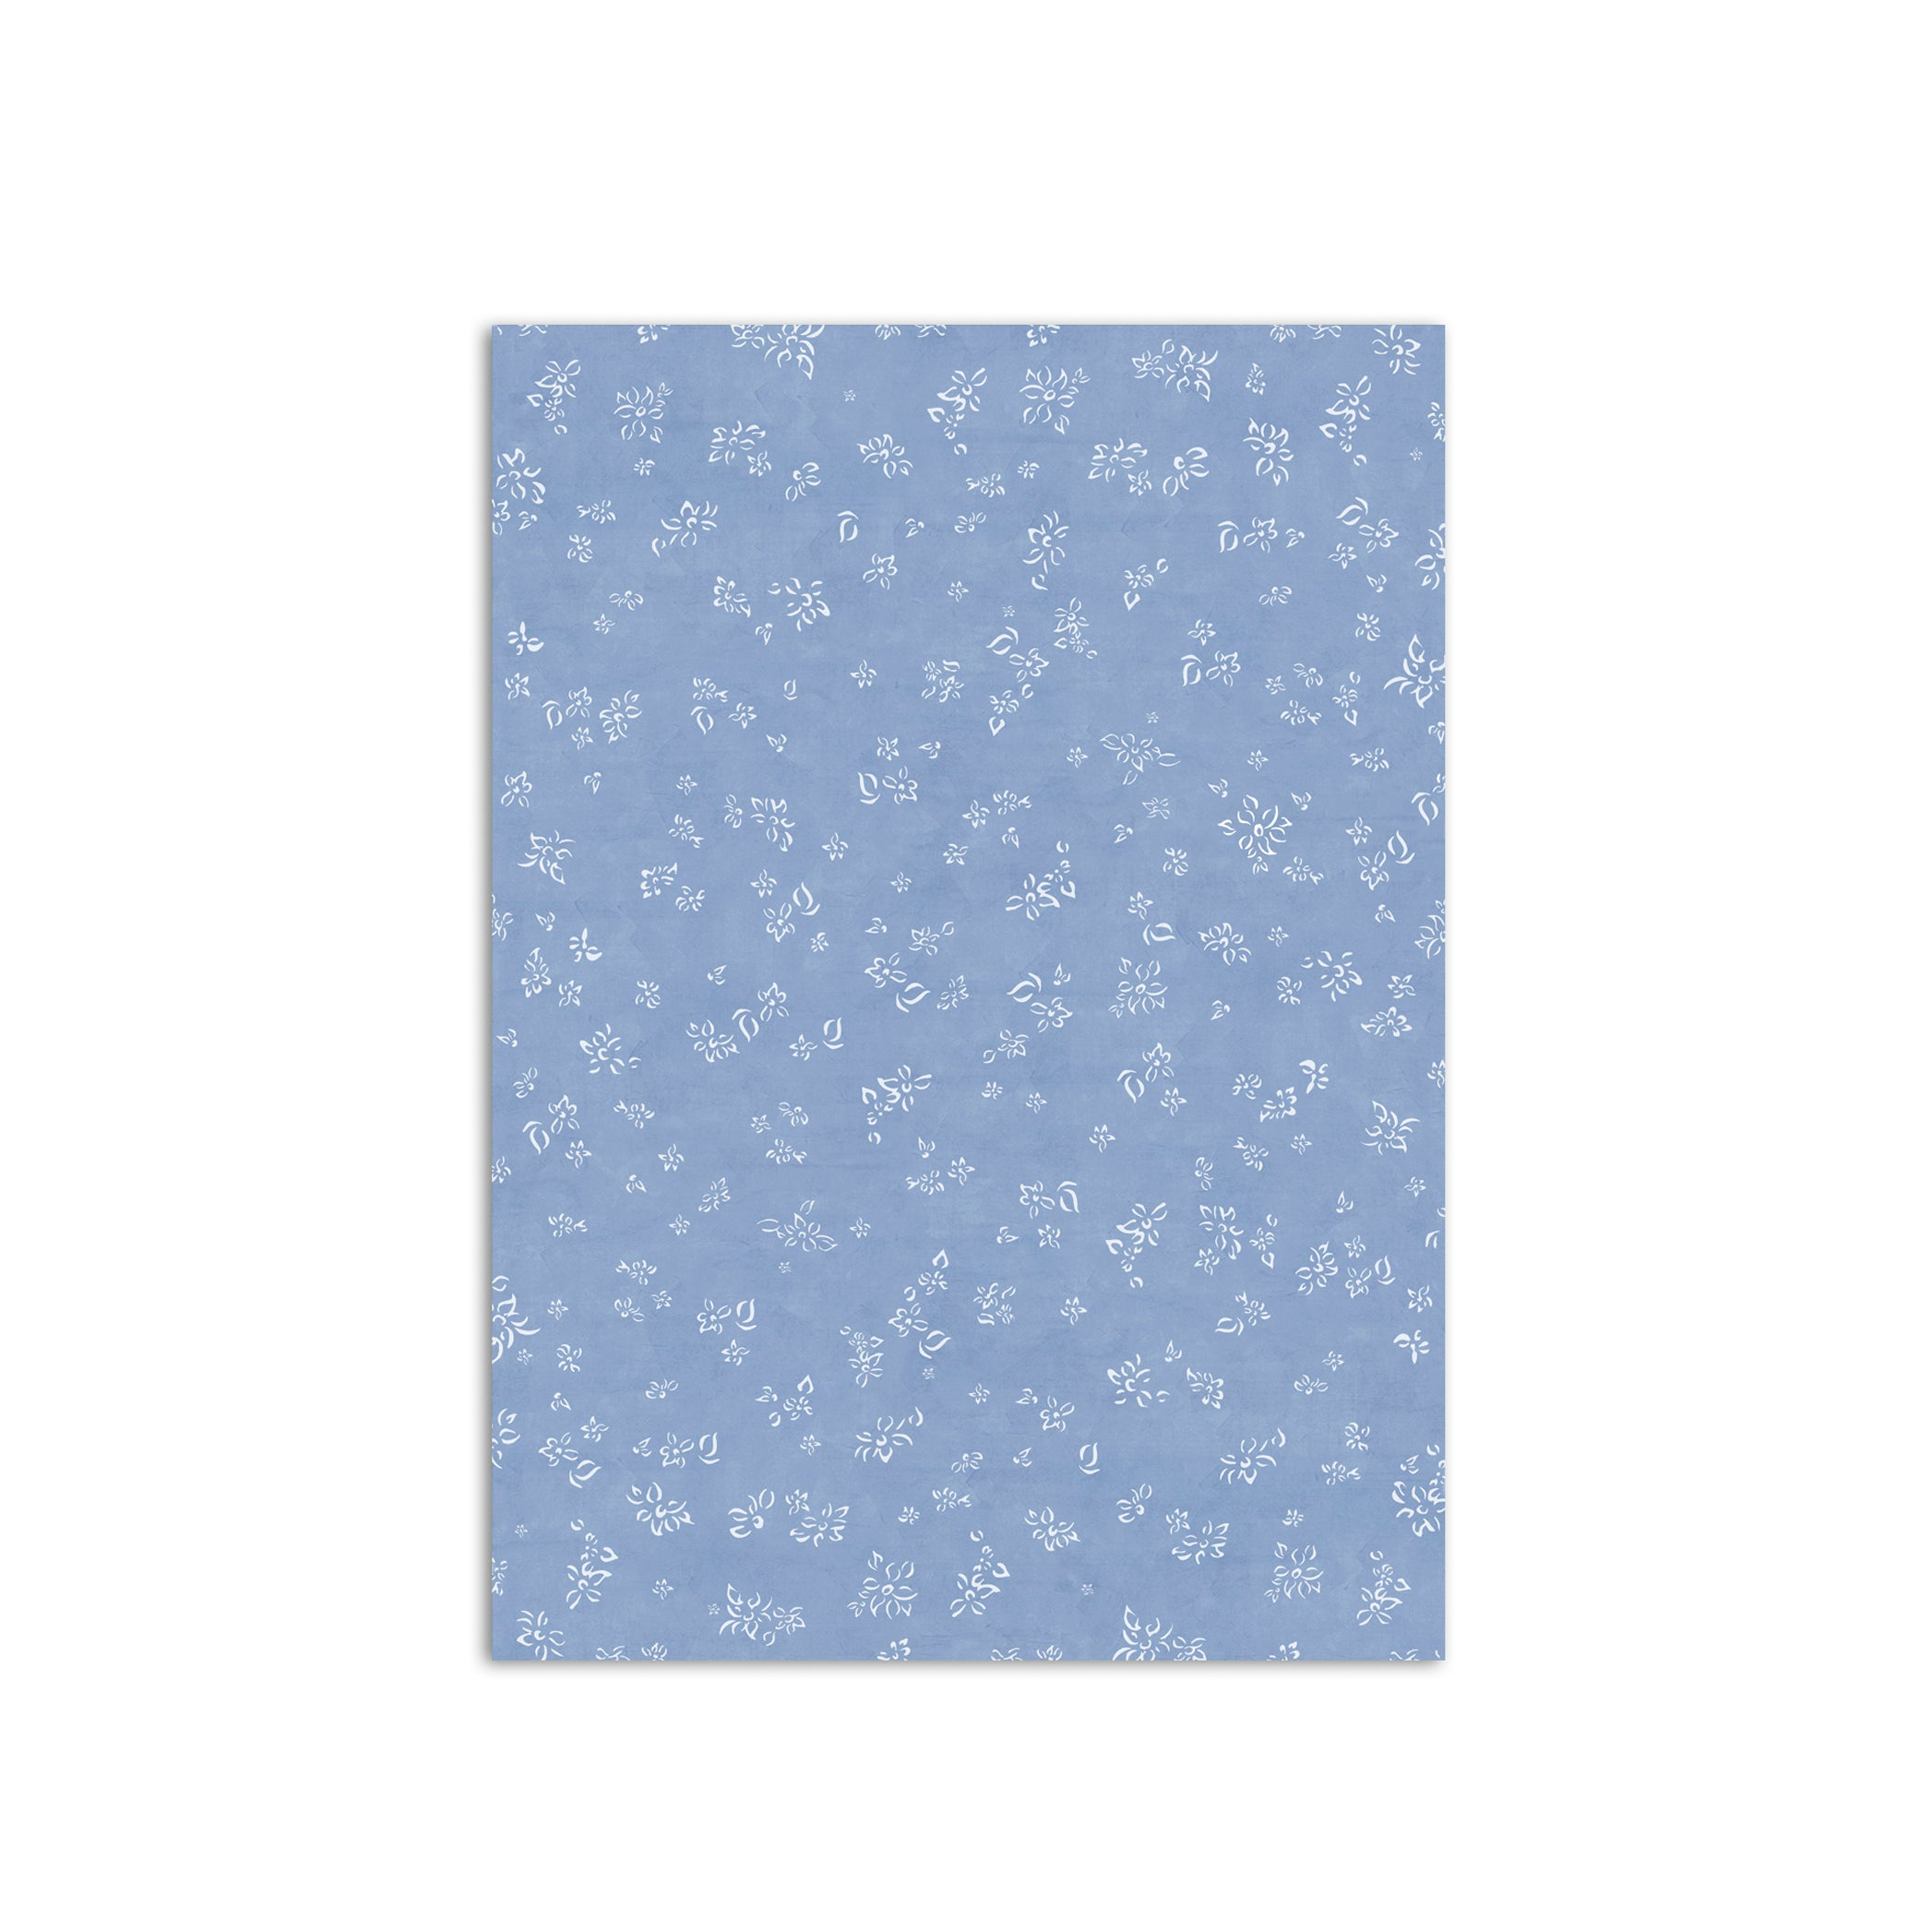 S&B Falling Flower Wrapping Paper in Pale Blue, Roll of 4